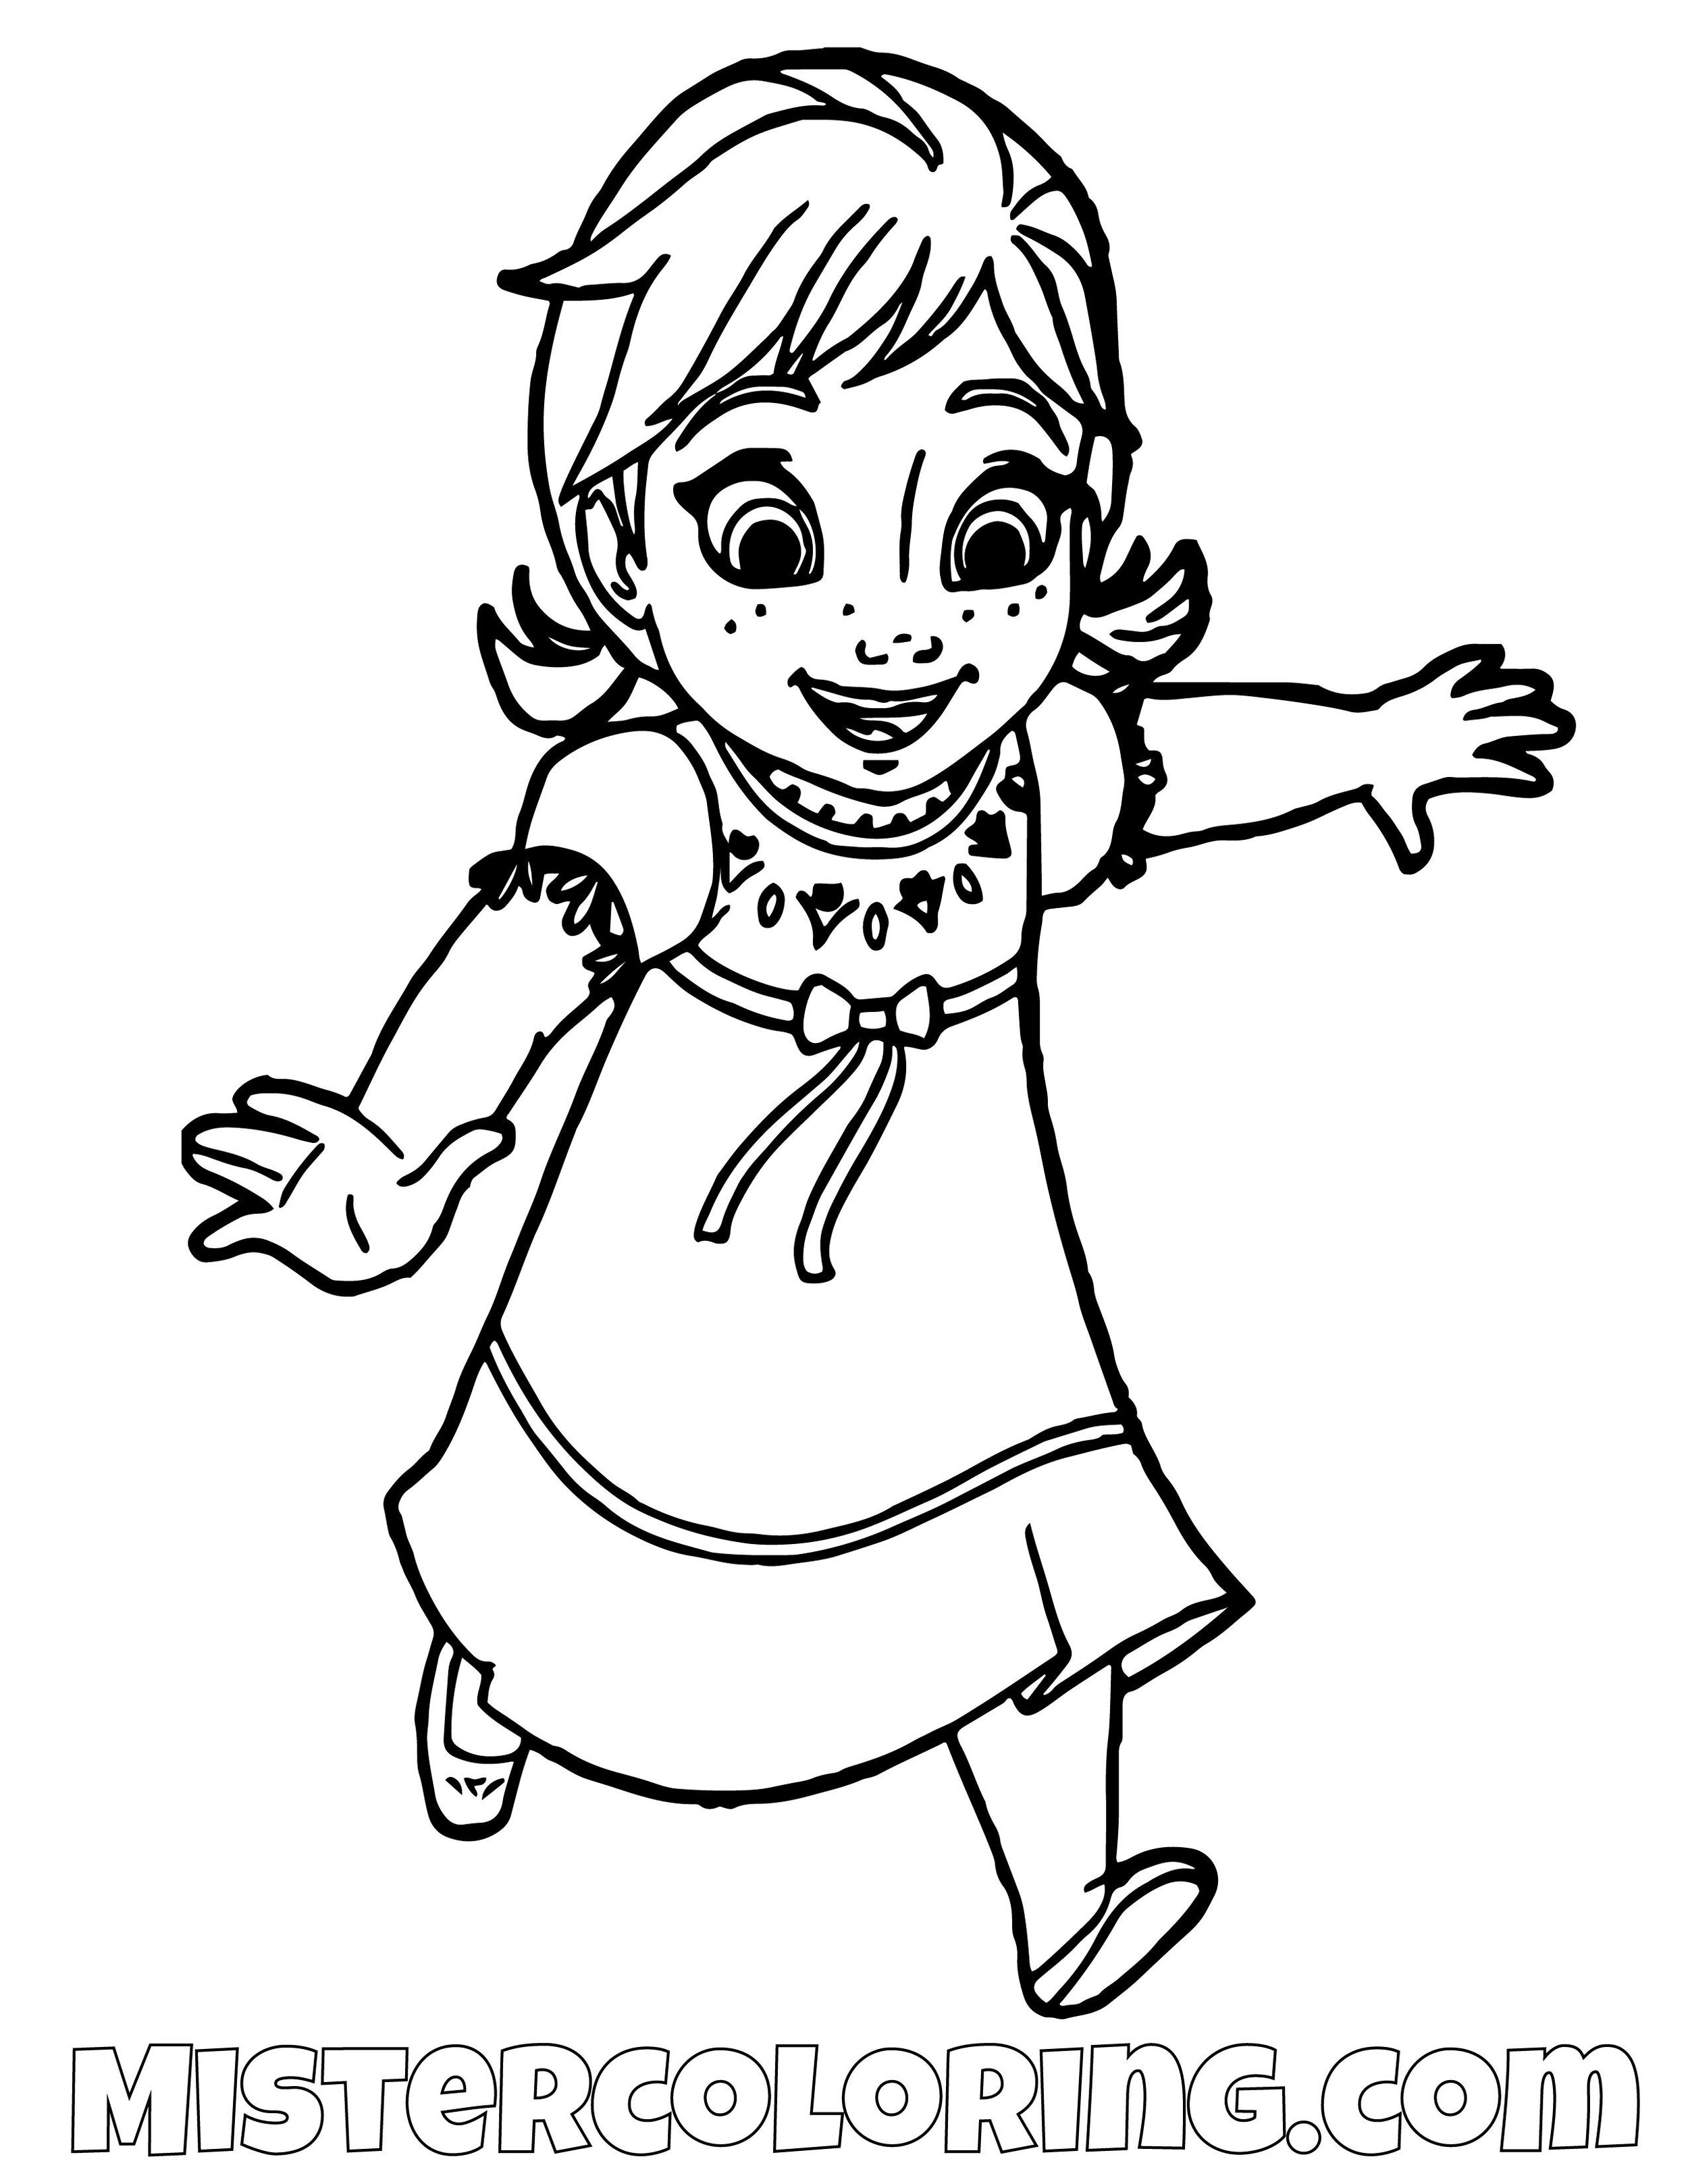 Frozen 2 Coloring Pages For Kids